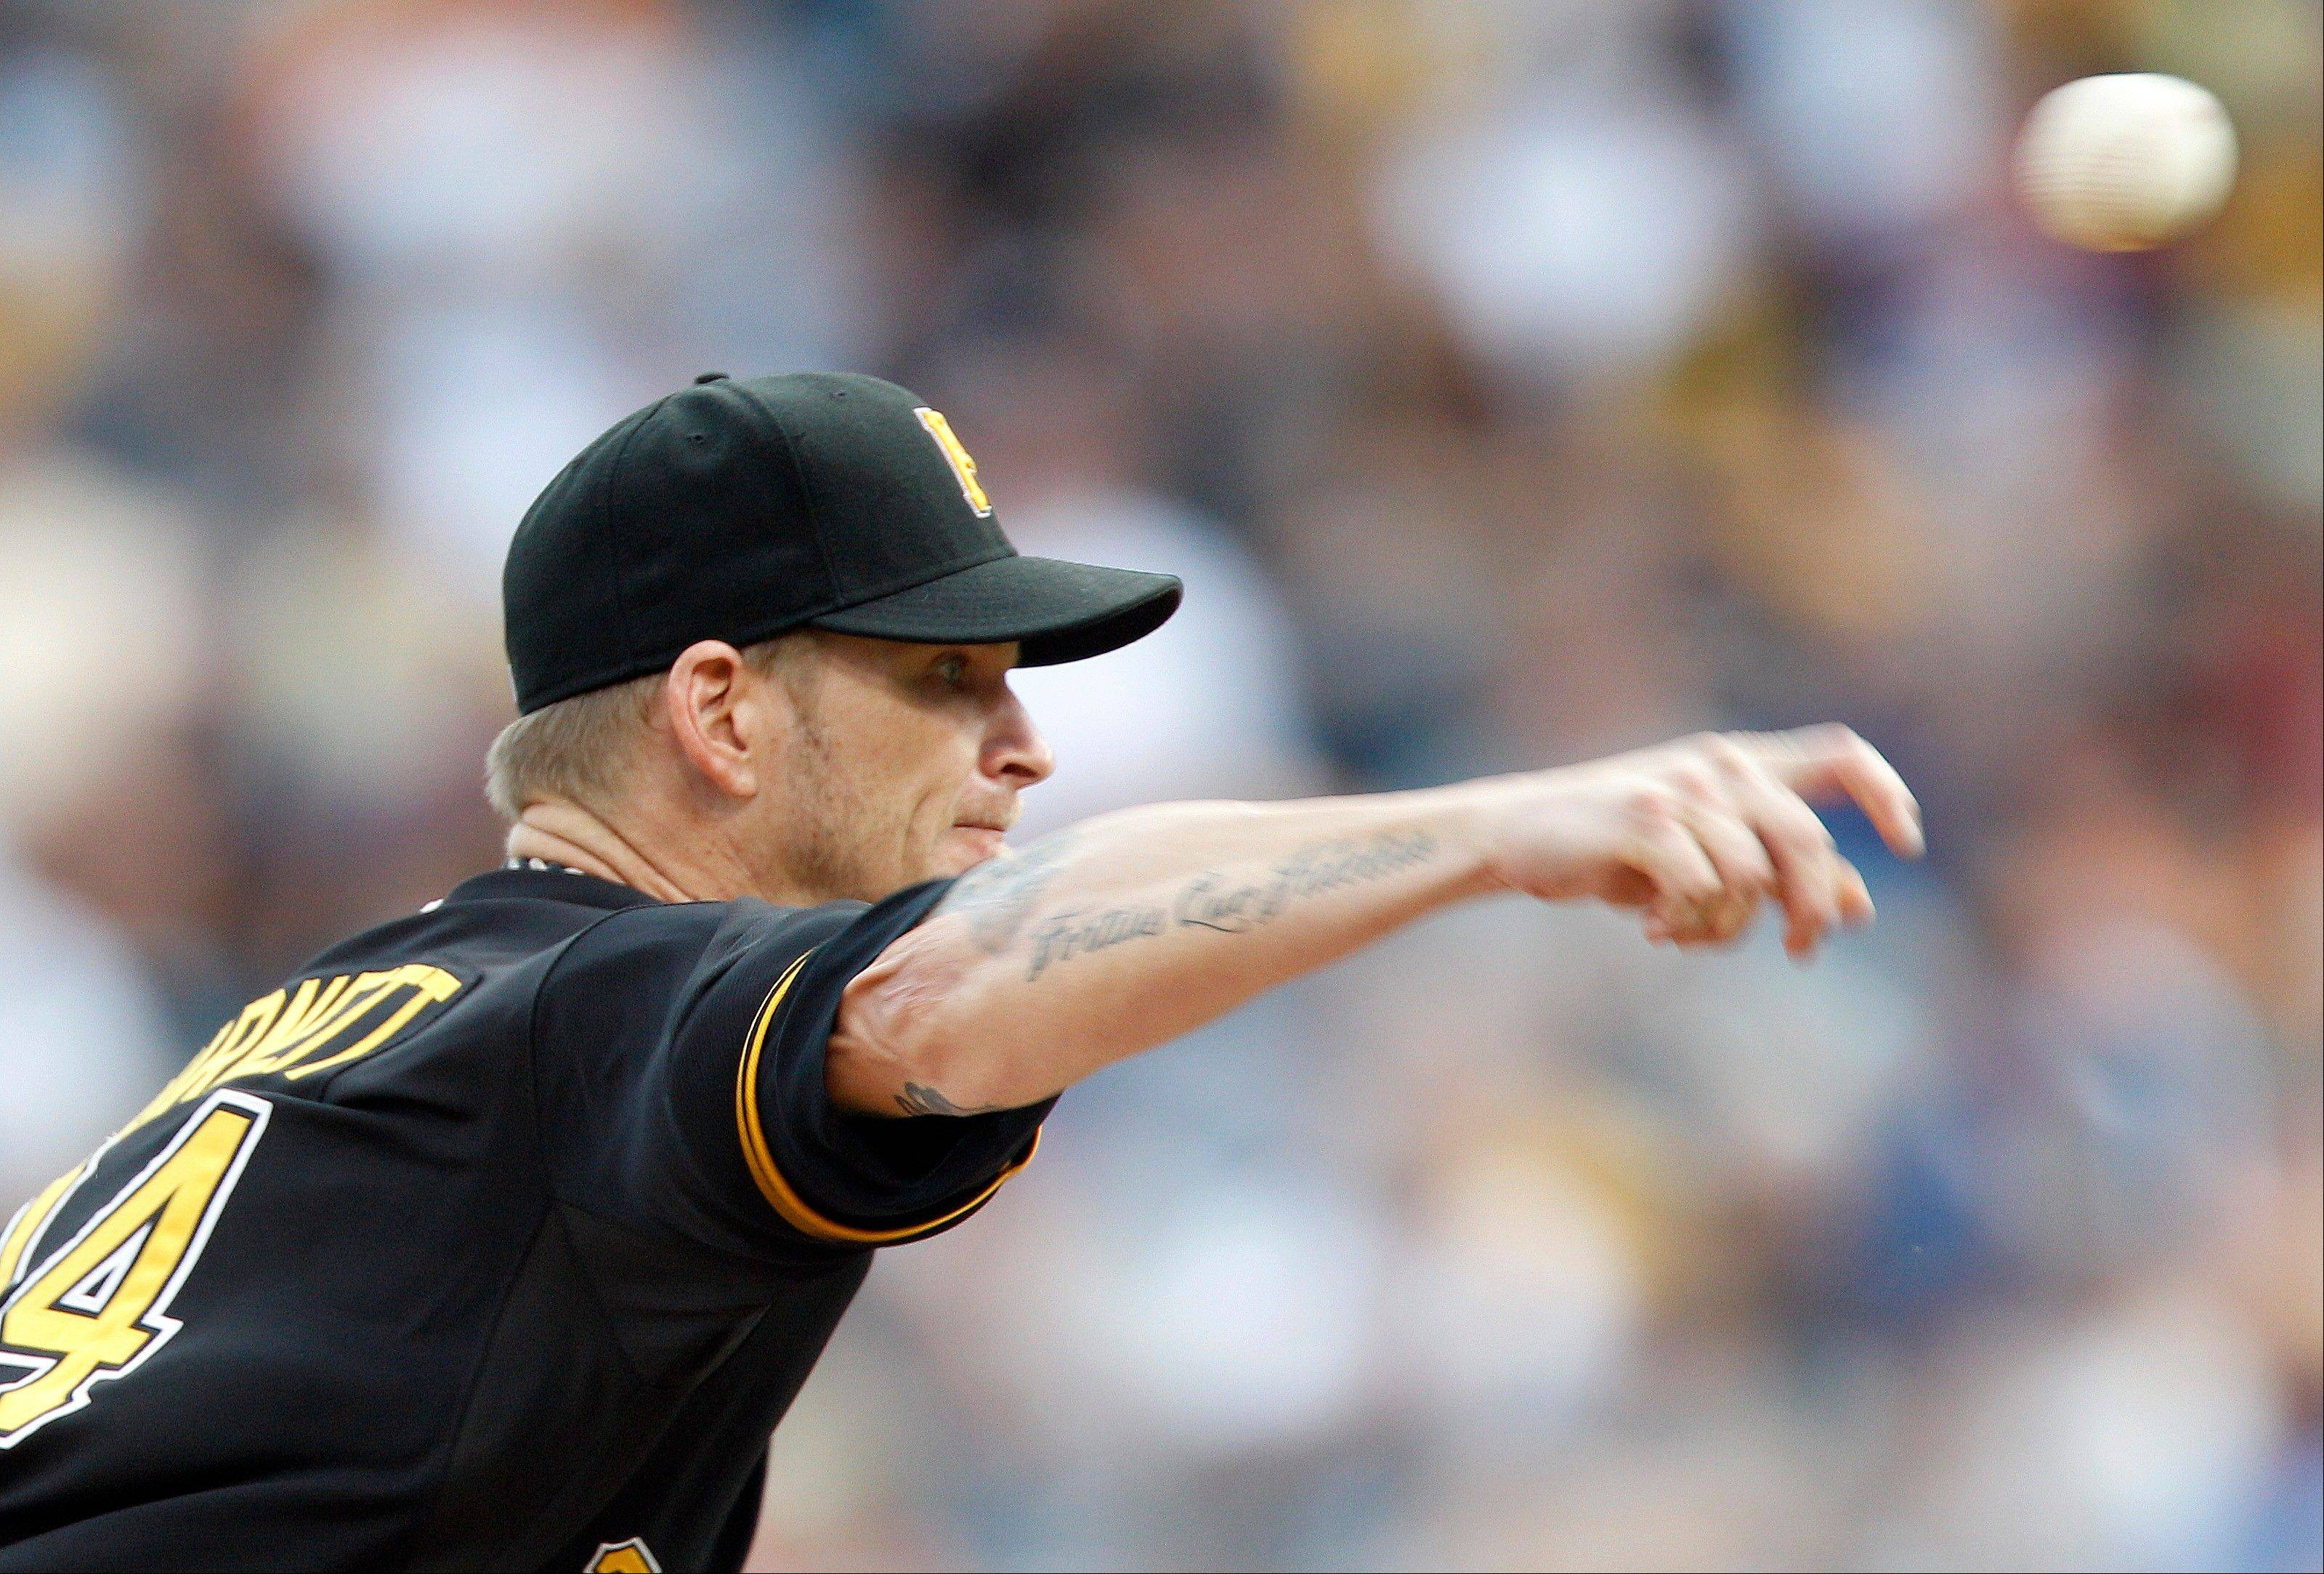 Pittsburgh starting pitcher A.J. Burnett had seven strikeouts Thursday in a home victory against Los Angeles.